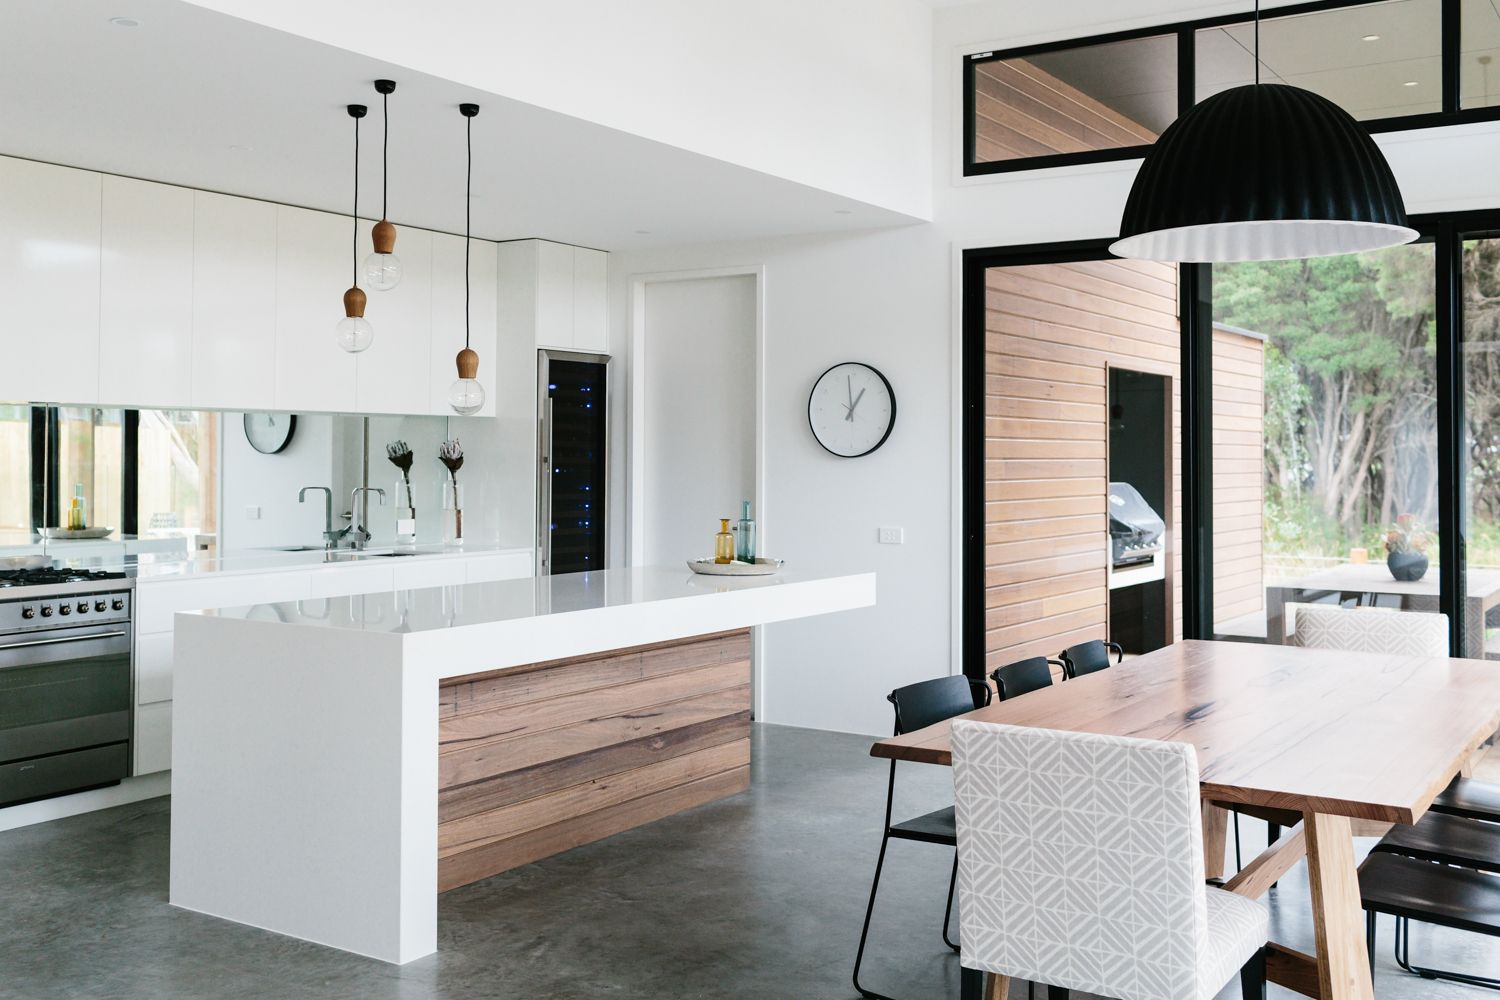 countertop floors white and painting kitchen with black photos lamps pendant above concrete stained painted images tiles inspirations flooring floor ideas also